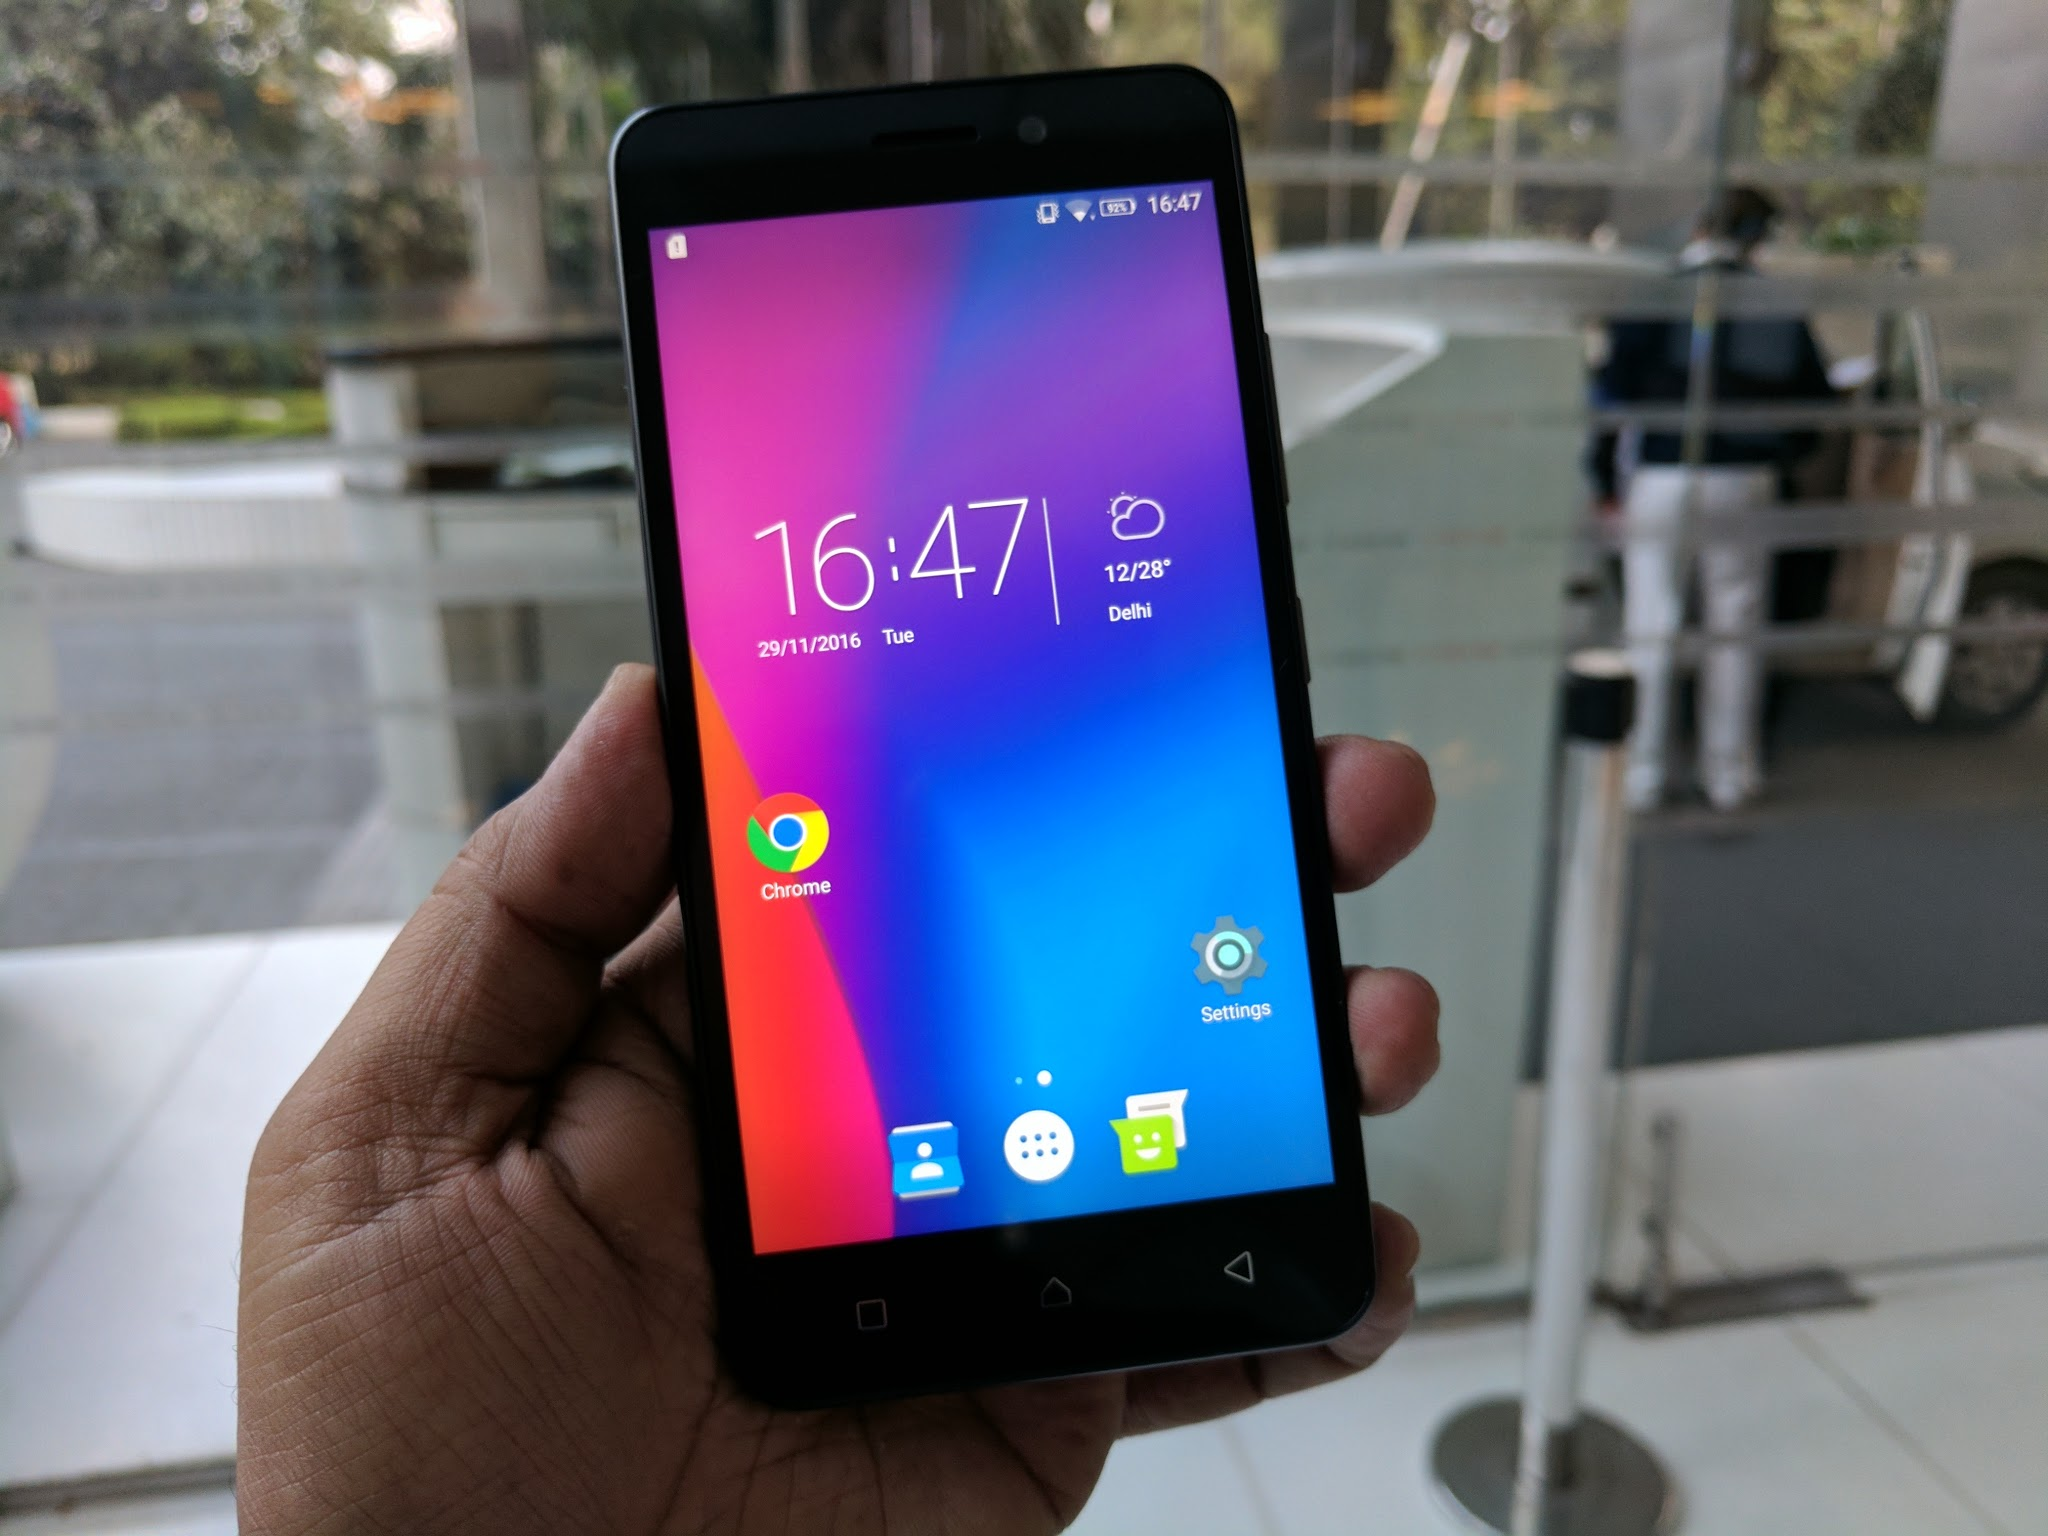 Lenovo K6 Power Vs Xiaomi Redmi 3S Prime: Which to Buy and Why